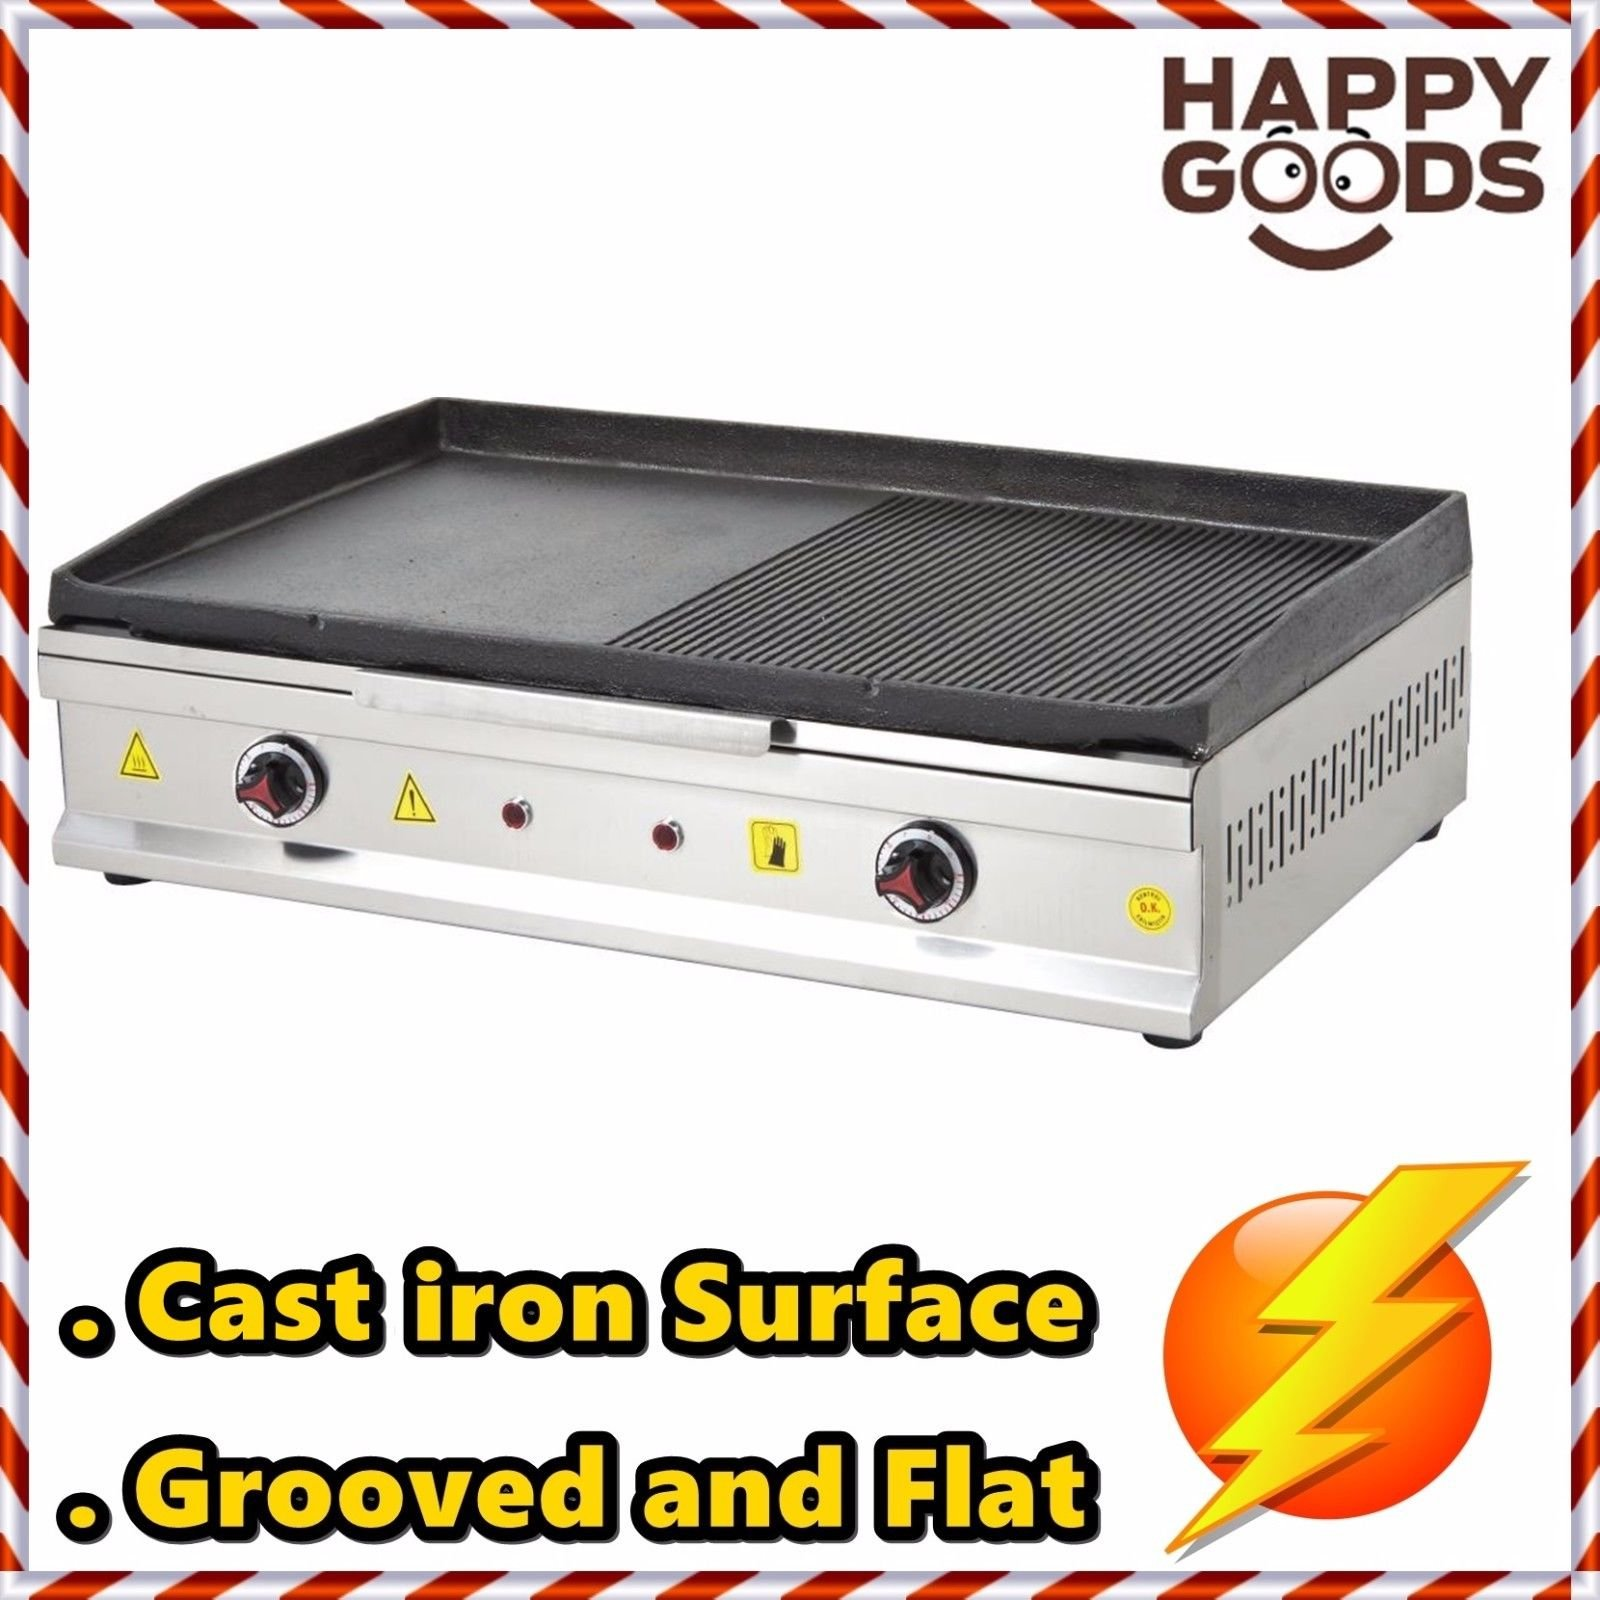 28 '' ( 70 cm ) ELECTRIC Commercial Kitchen Equipment GROOVED AND FLAT CAST IRON SURFACE Countertop Manual Griddle Restaurant Cooktop Top Grill 220V